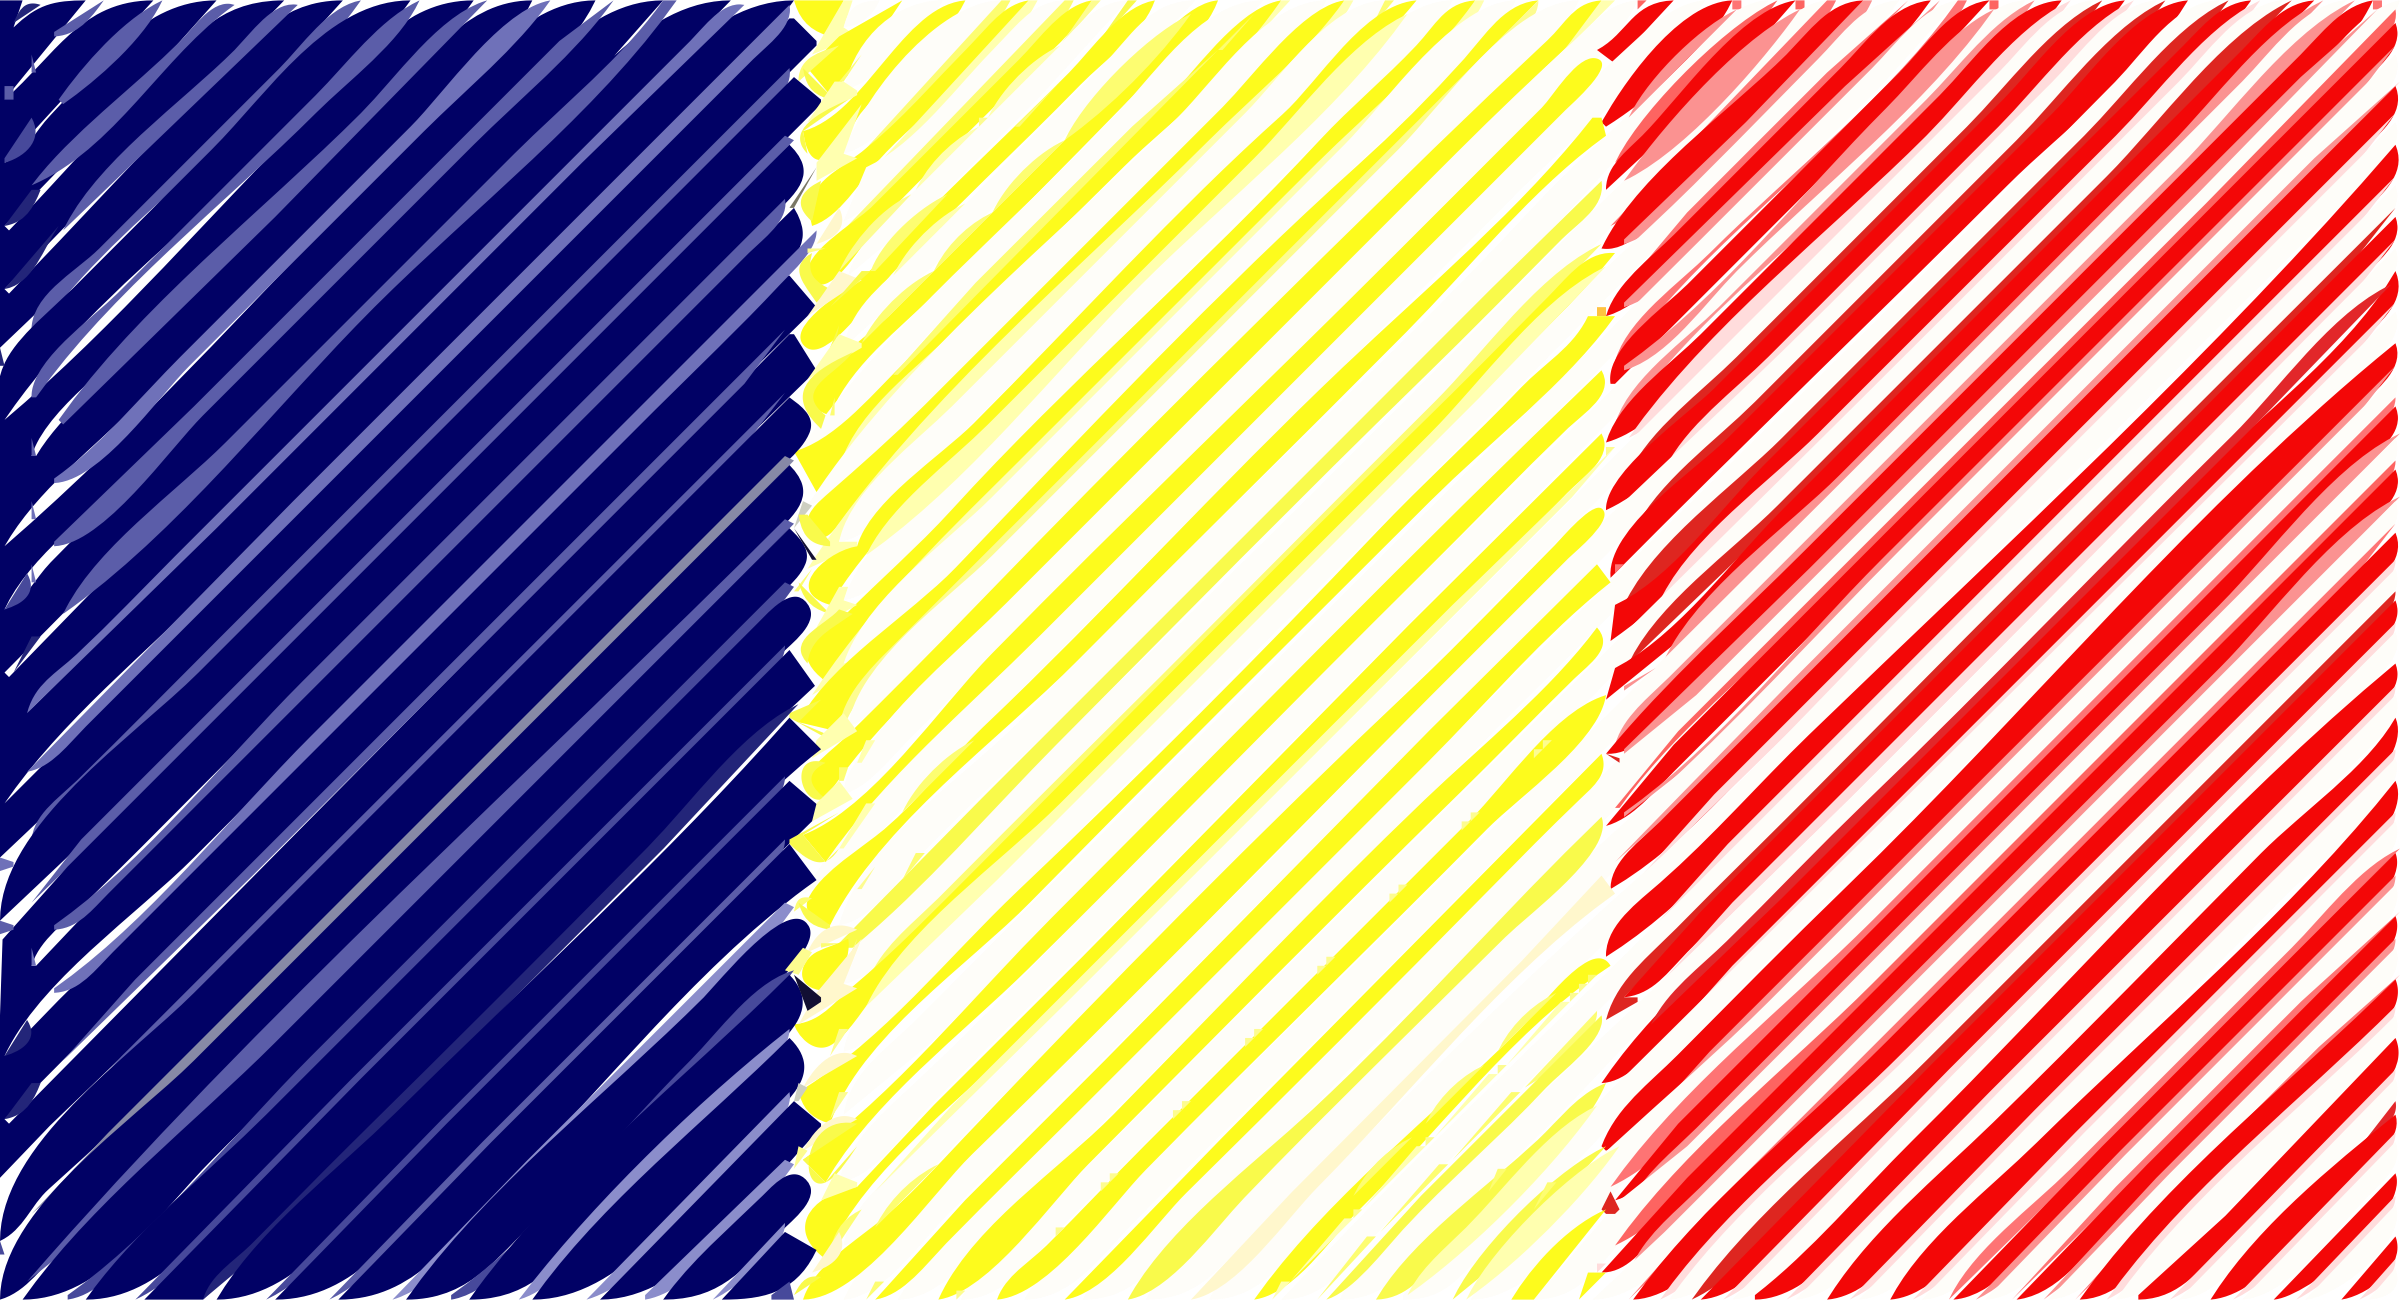 Chad flag linear by Joesph